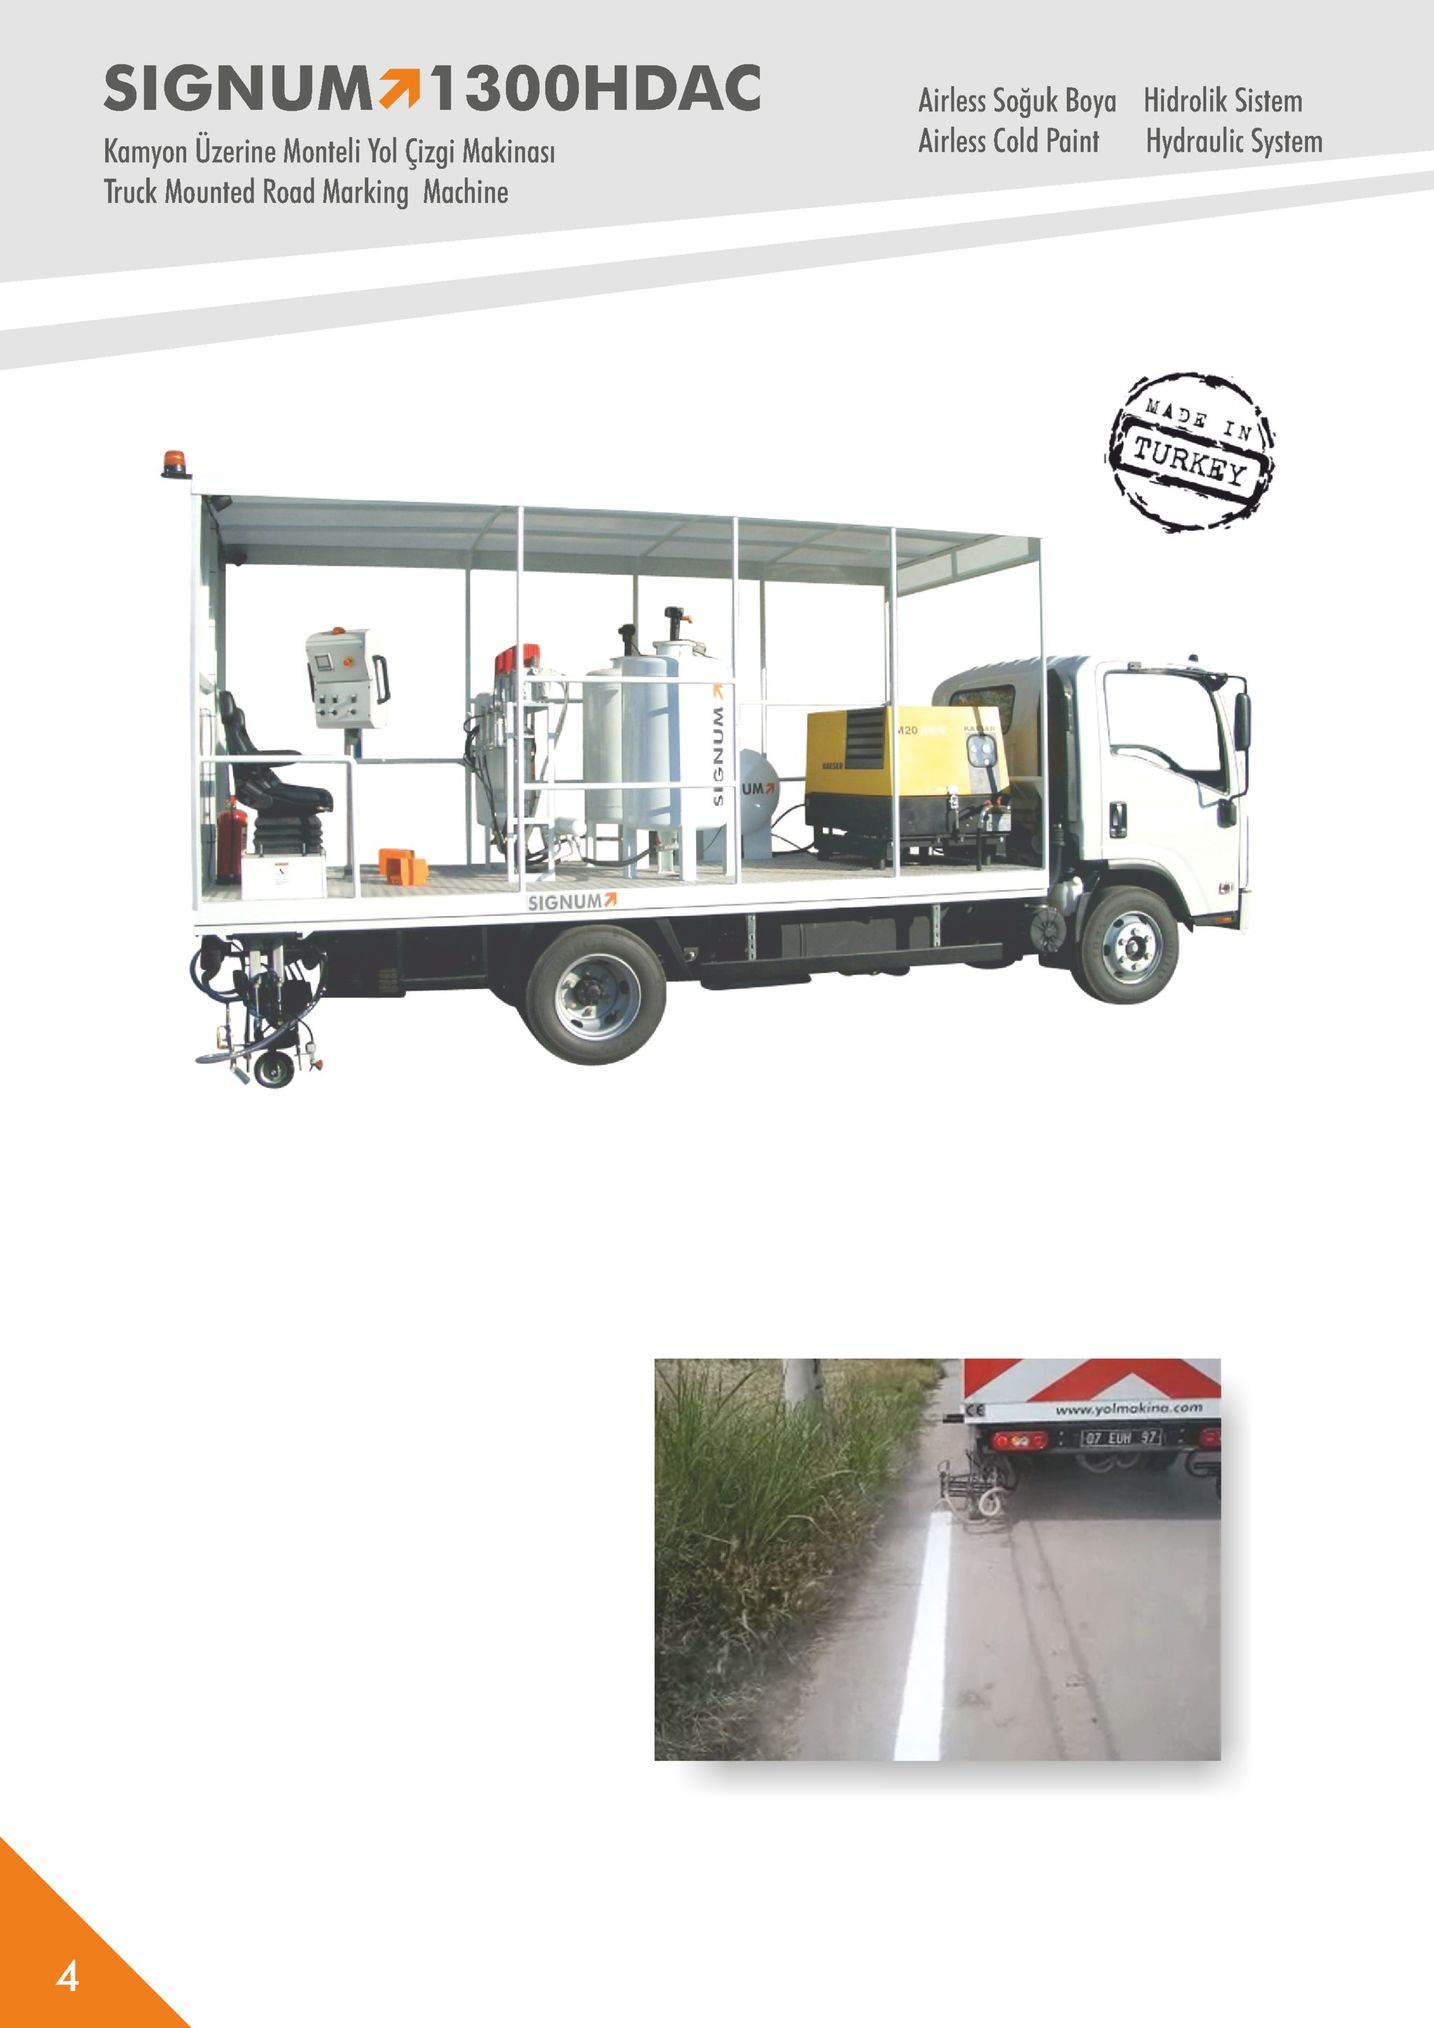 signum71300hdac airless soğuk boya airless cold paint hidrolik sistem hydraulic system kamyon uzerine monteli yol çizgi makinas truck mounted road marking machine turkey 120 signum ce www.yolmakino.com